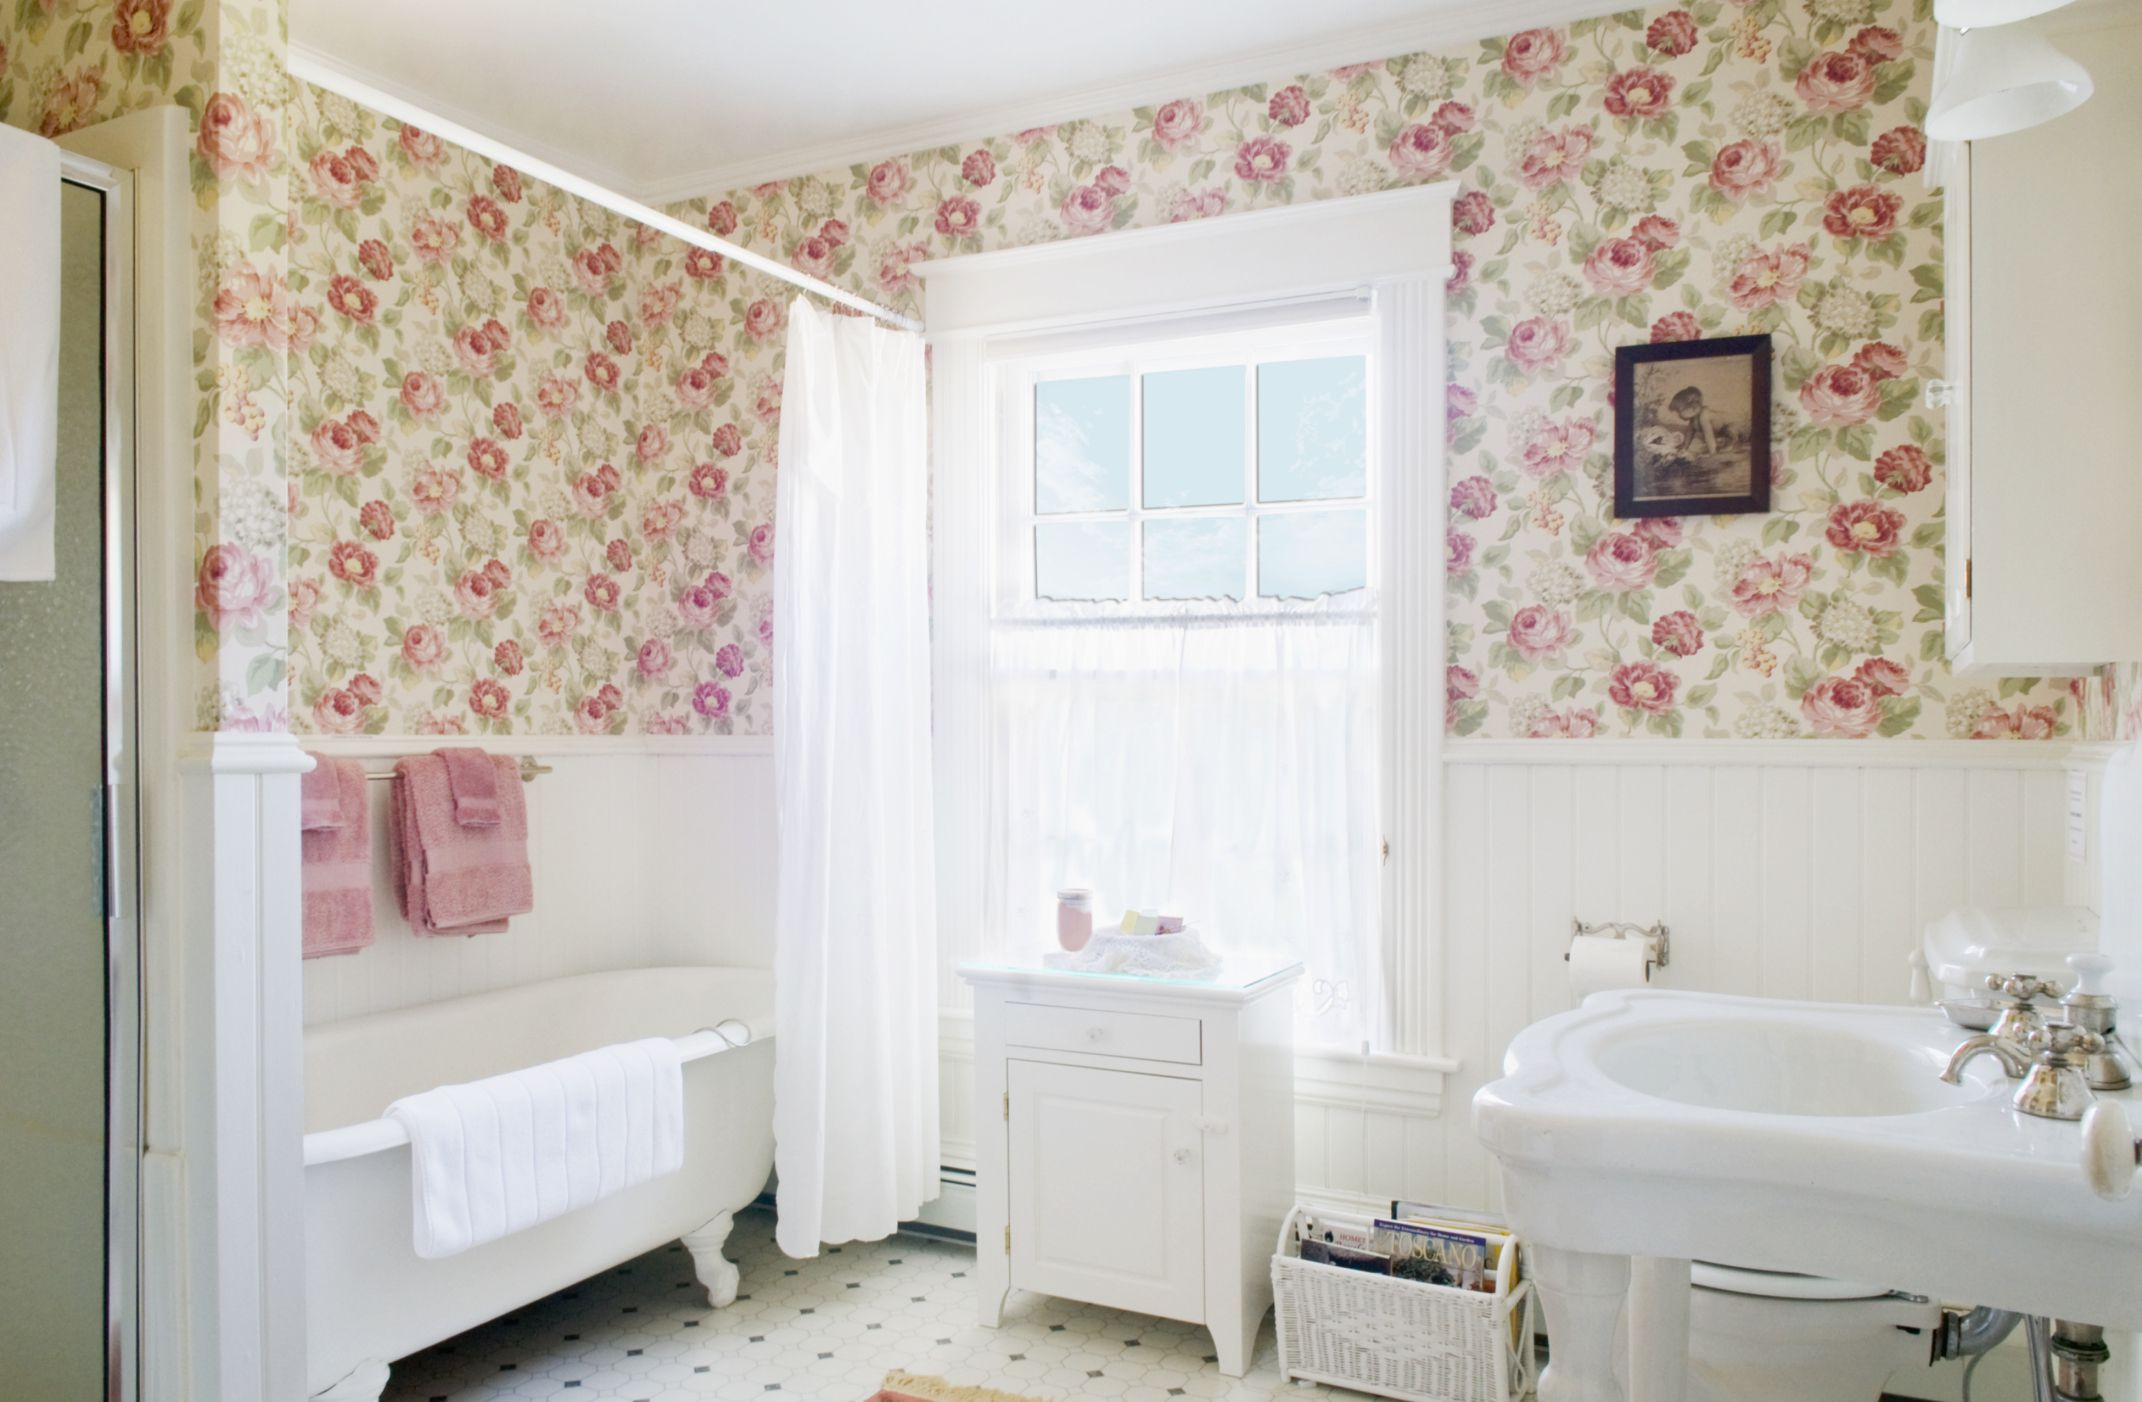 12 Ways To Use Floral Decor in Your Bathroom